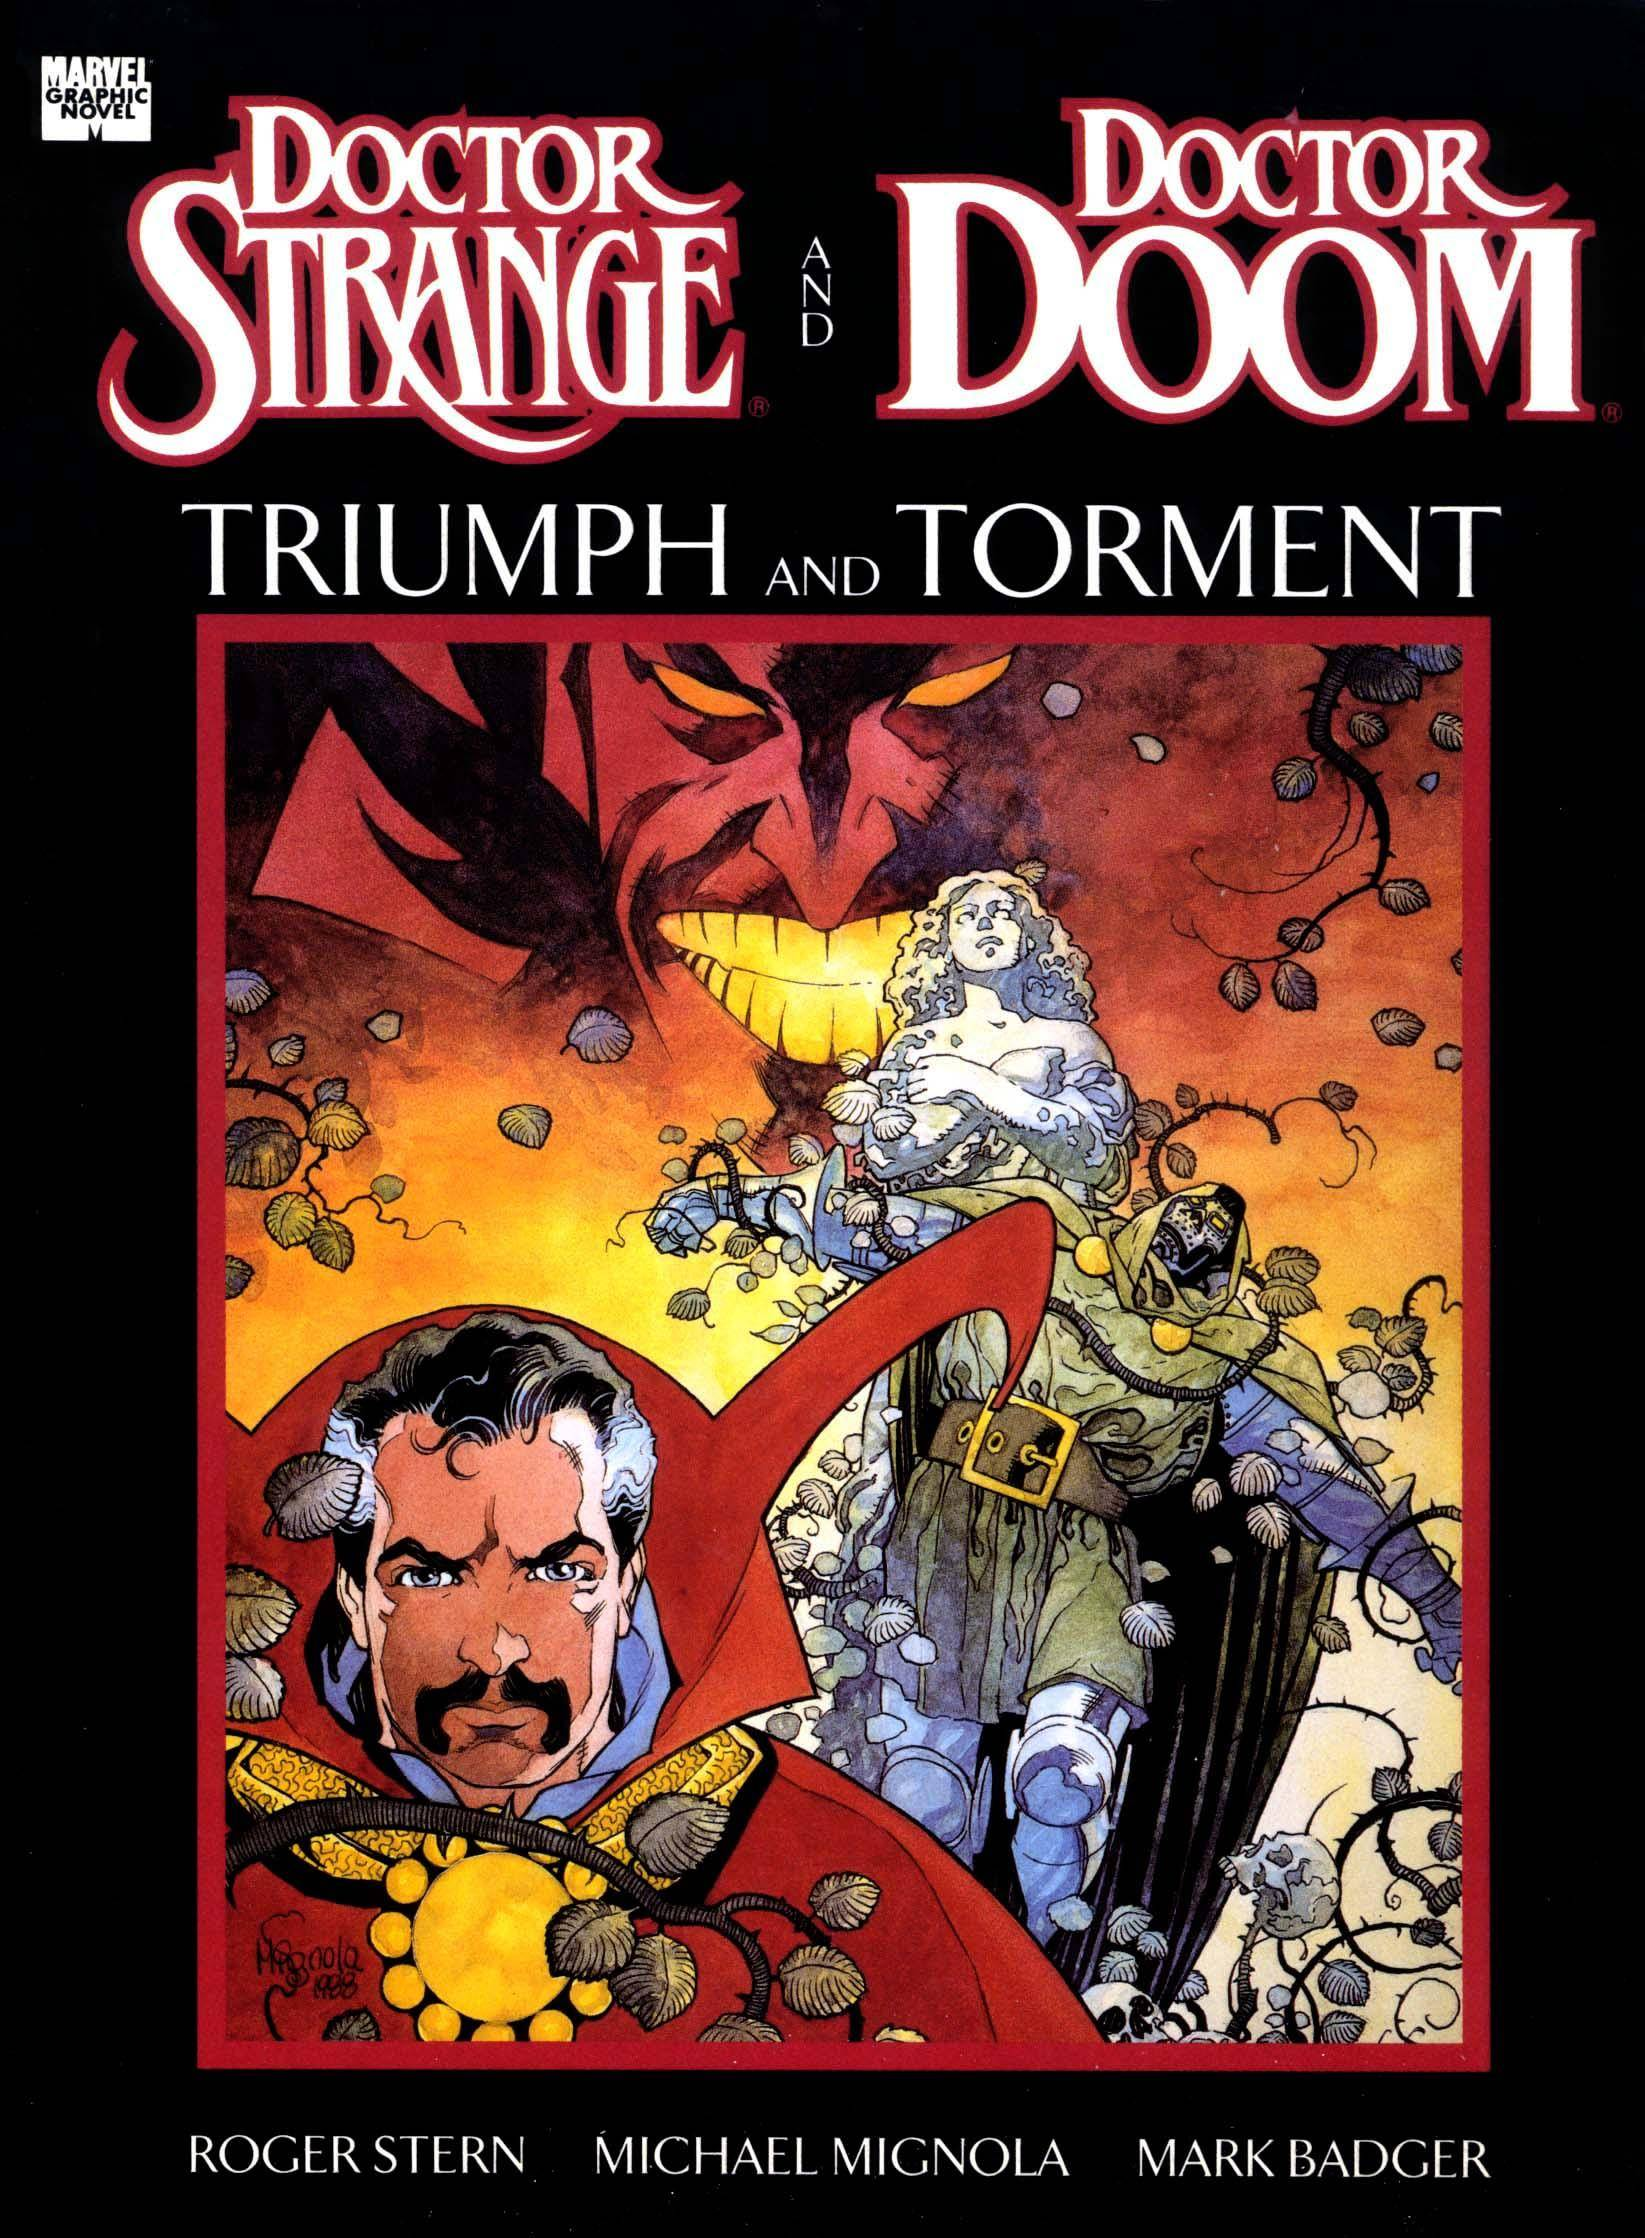 Marvel Graphic Novel 49 - Dr Strange  Dr Doom - Triumph  Torment 1989